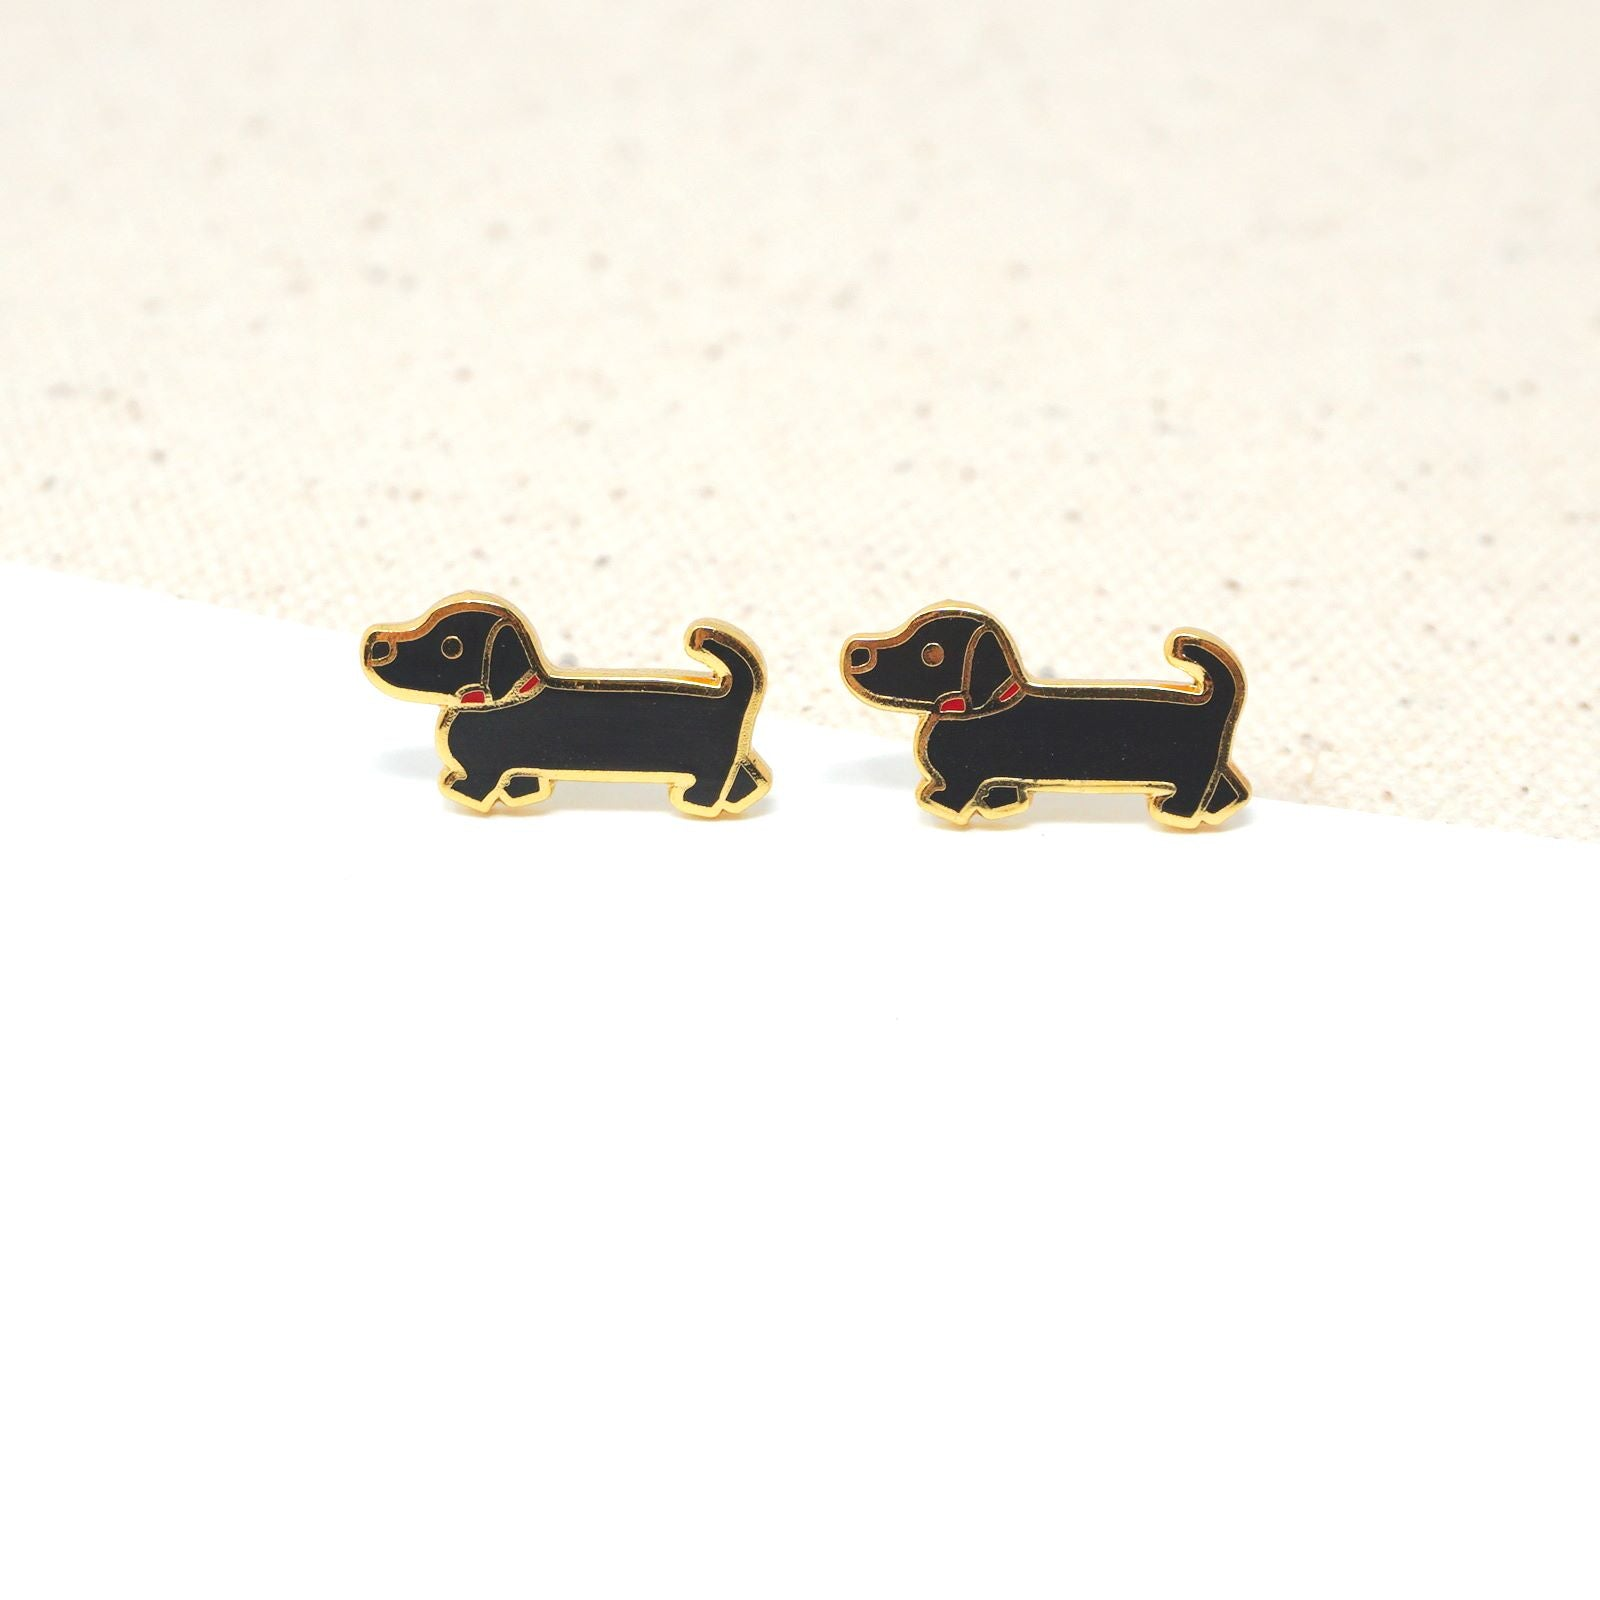 Black Doxie (Dachshund) Enamel Stud Earrings